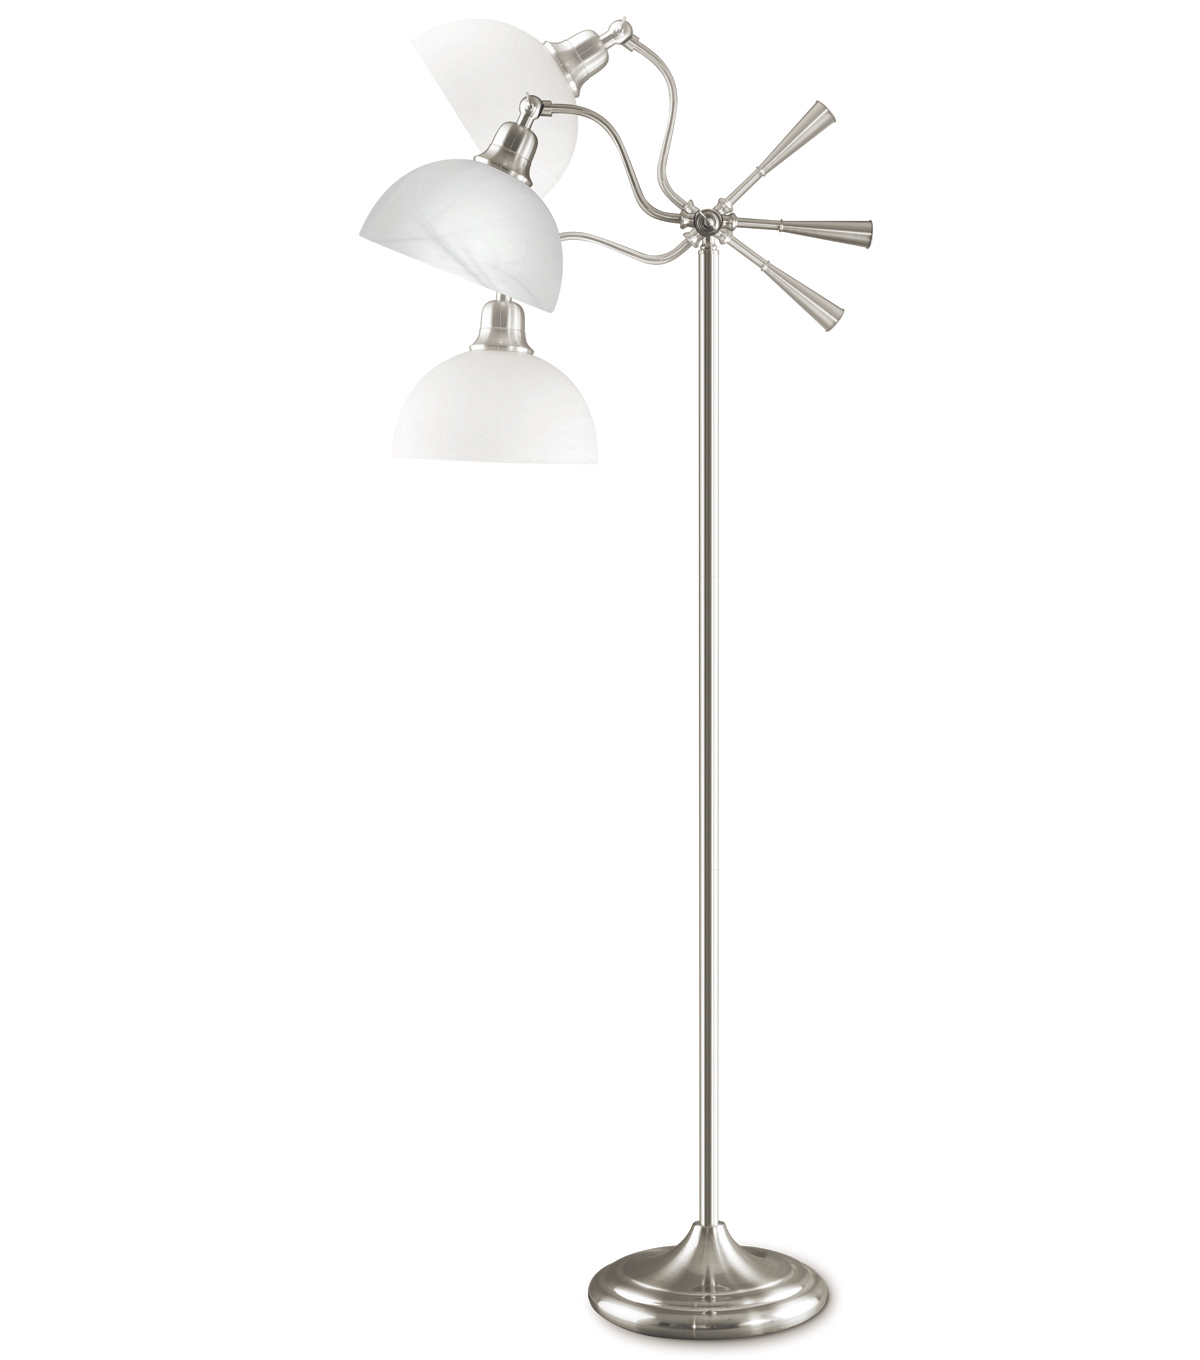 25w Brushed Nickel Cambridge Floor Lamp